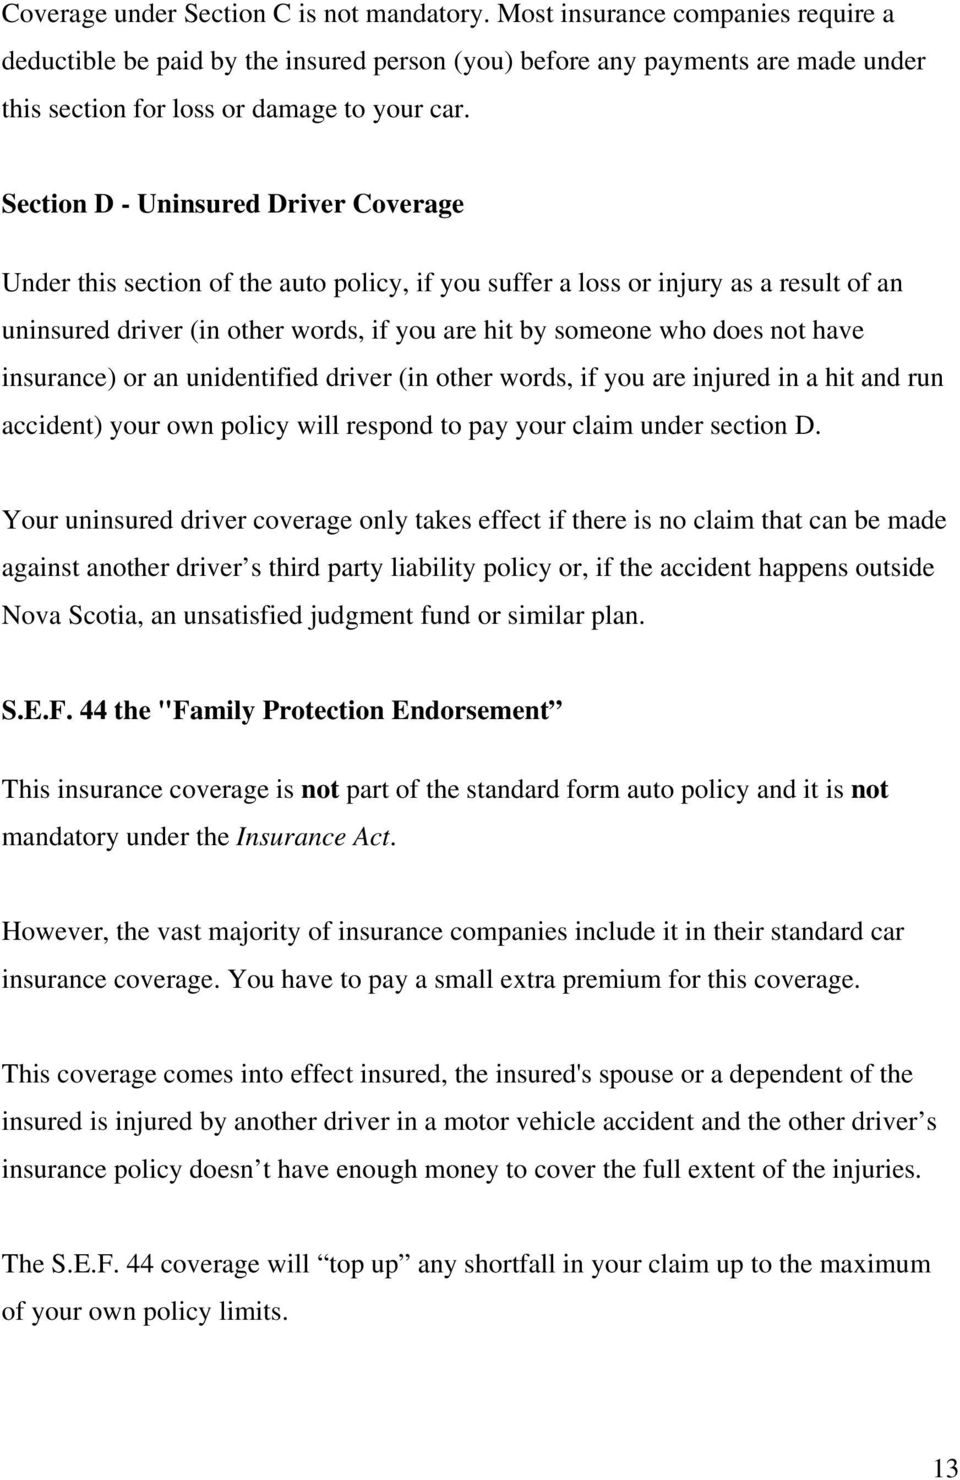 Section D - Uninsured Driver Coverage Under this section of the auto policy, if you suffer a loss or injury as a result of an uninsured driver (in other words, if you are hit by someone who does not